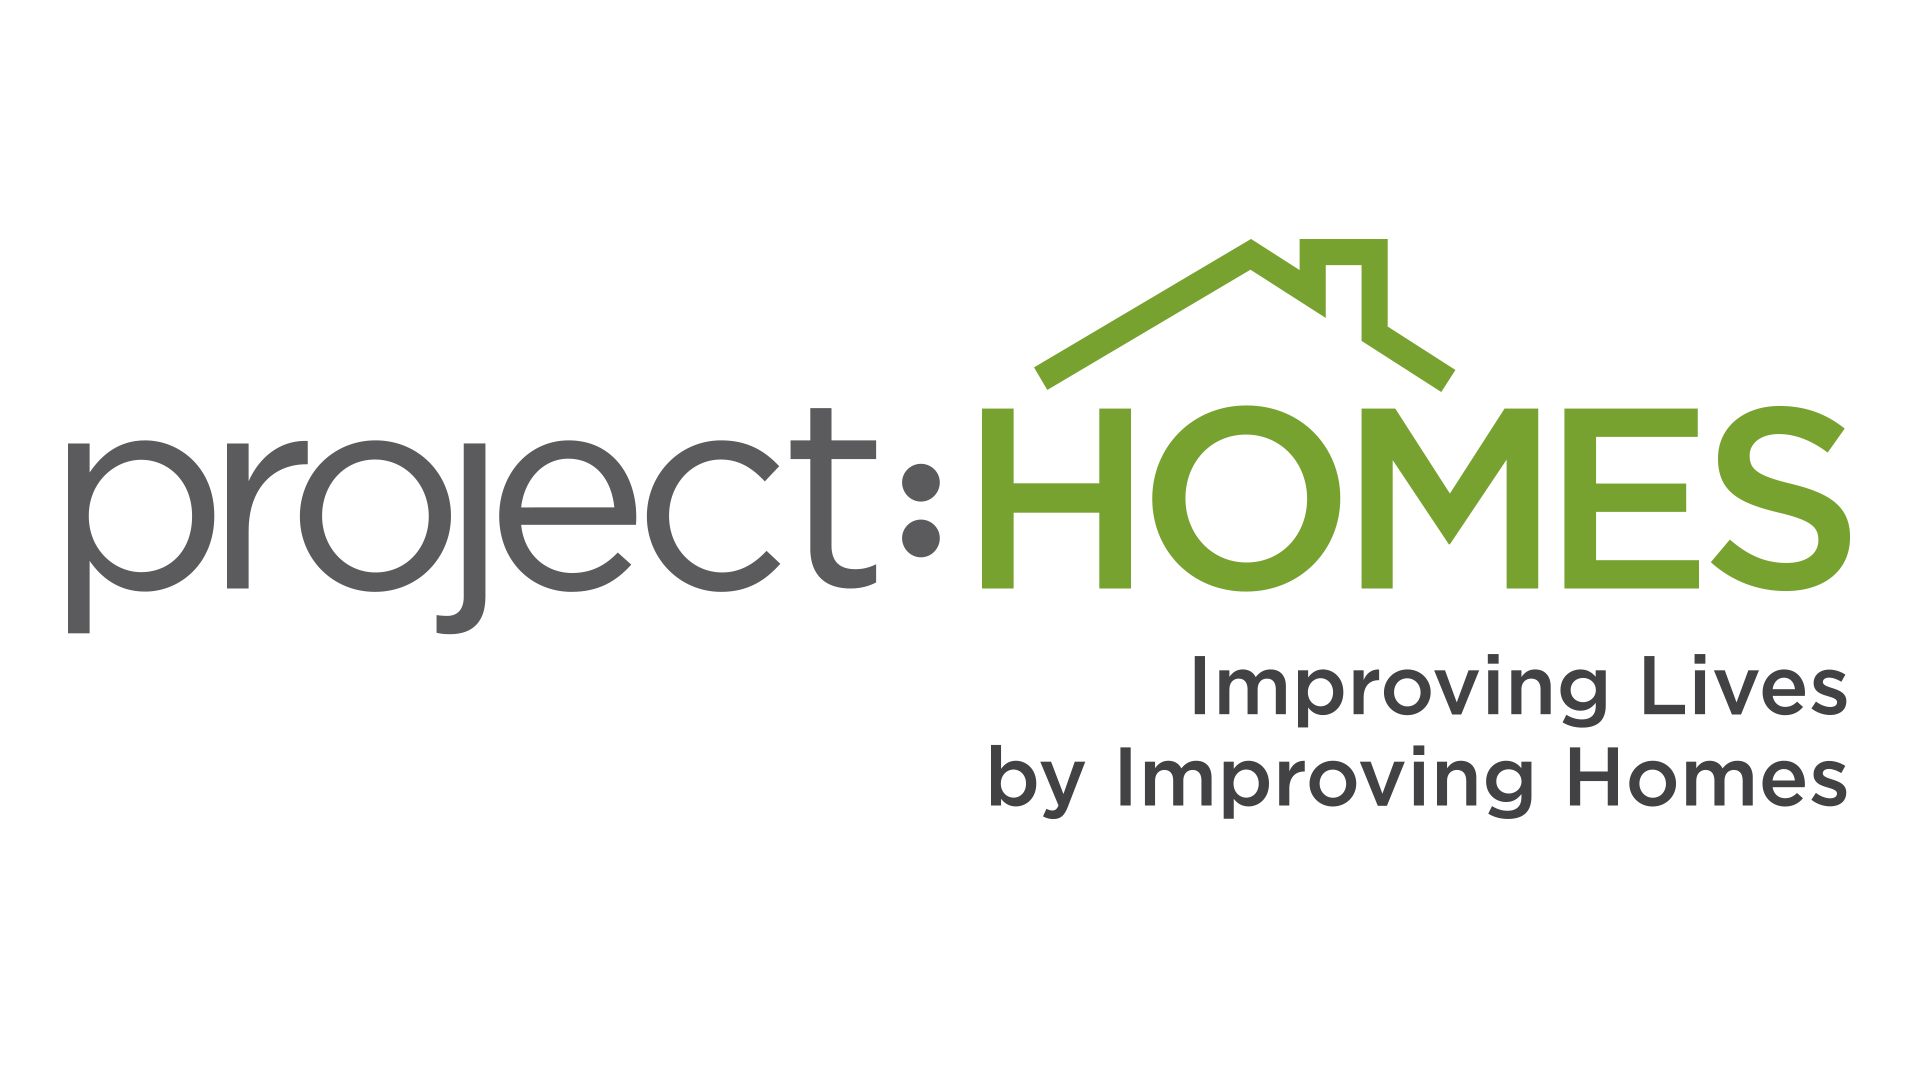 project: HOMES